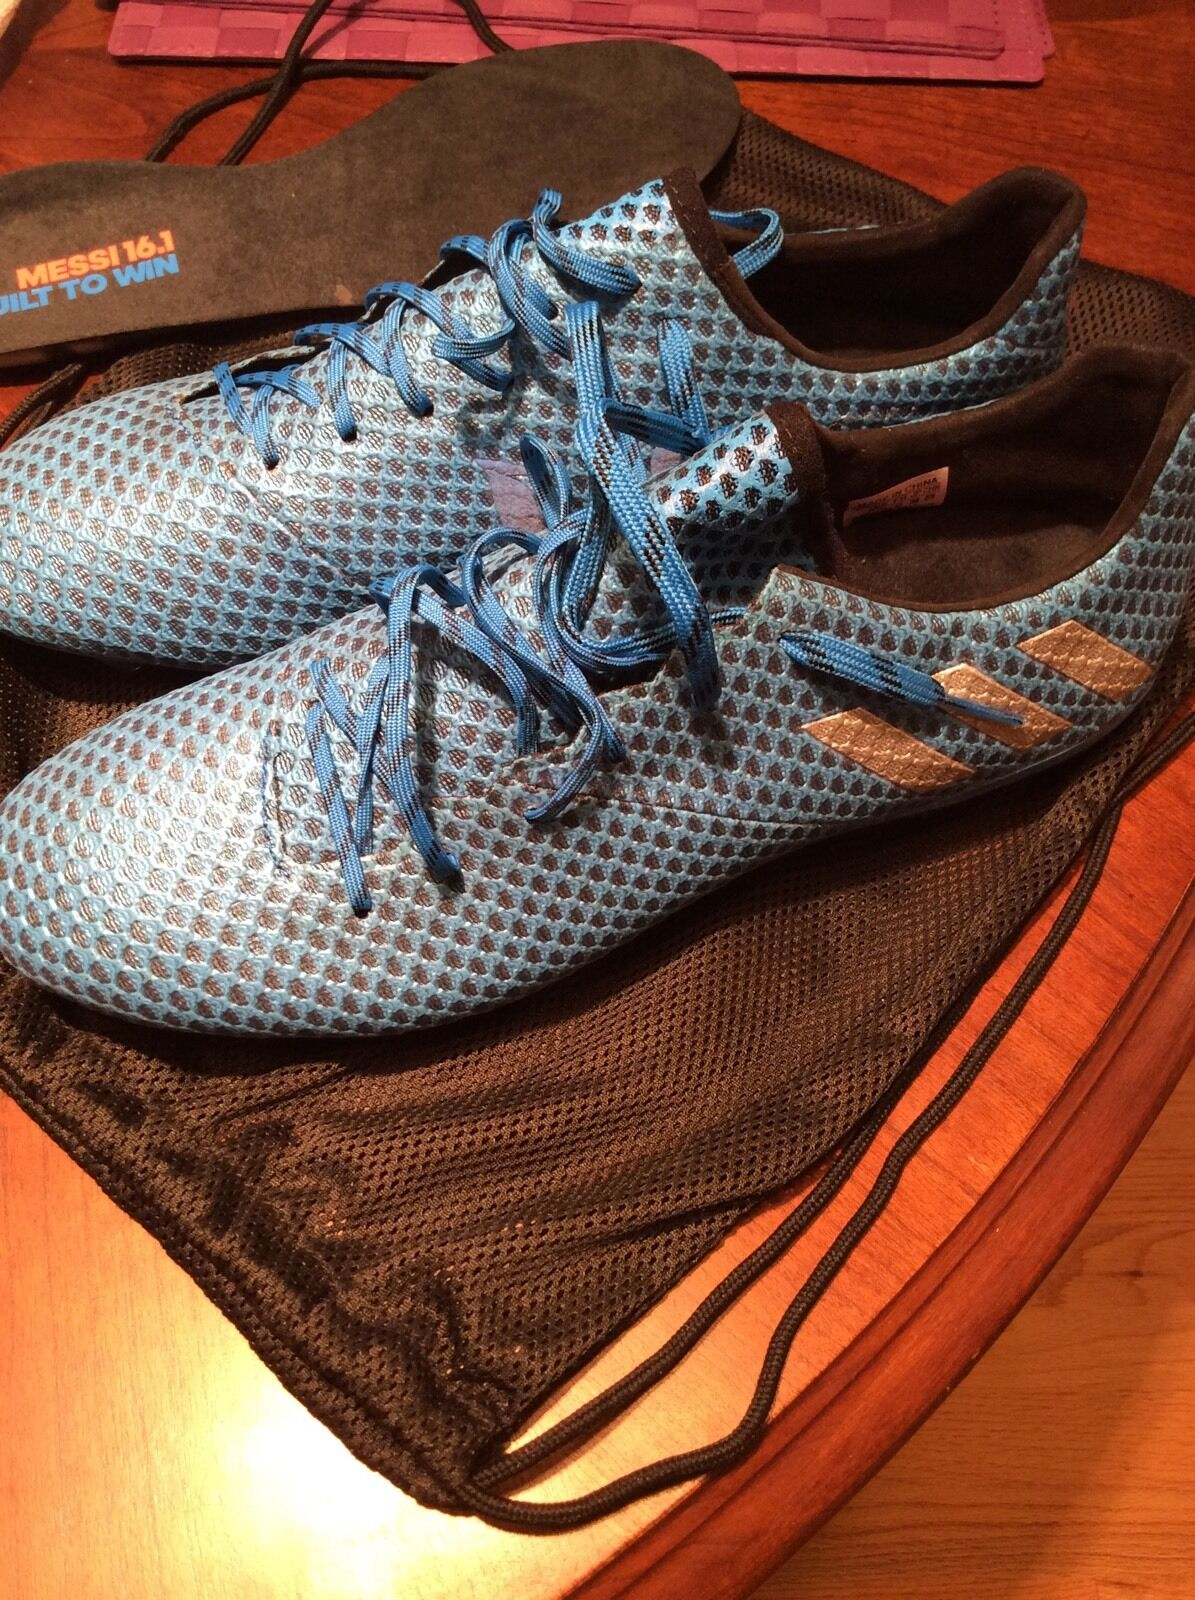 Adidas Messi 16.1 Soccer Field Cleats shoes blueee Size 10 Brand New Unworn